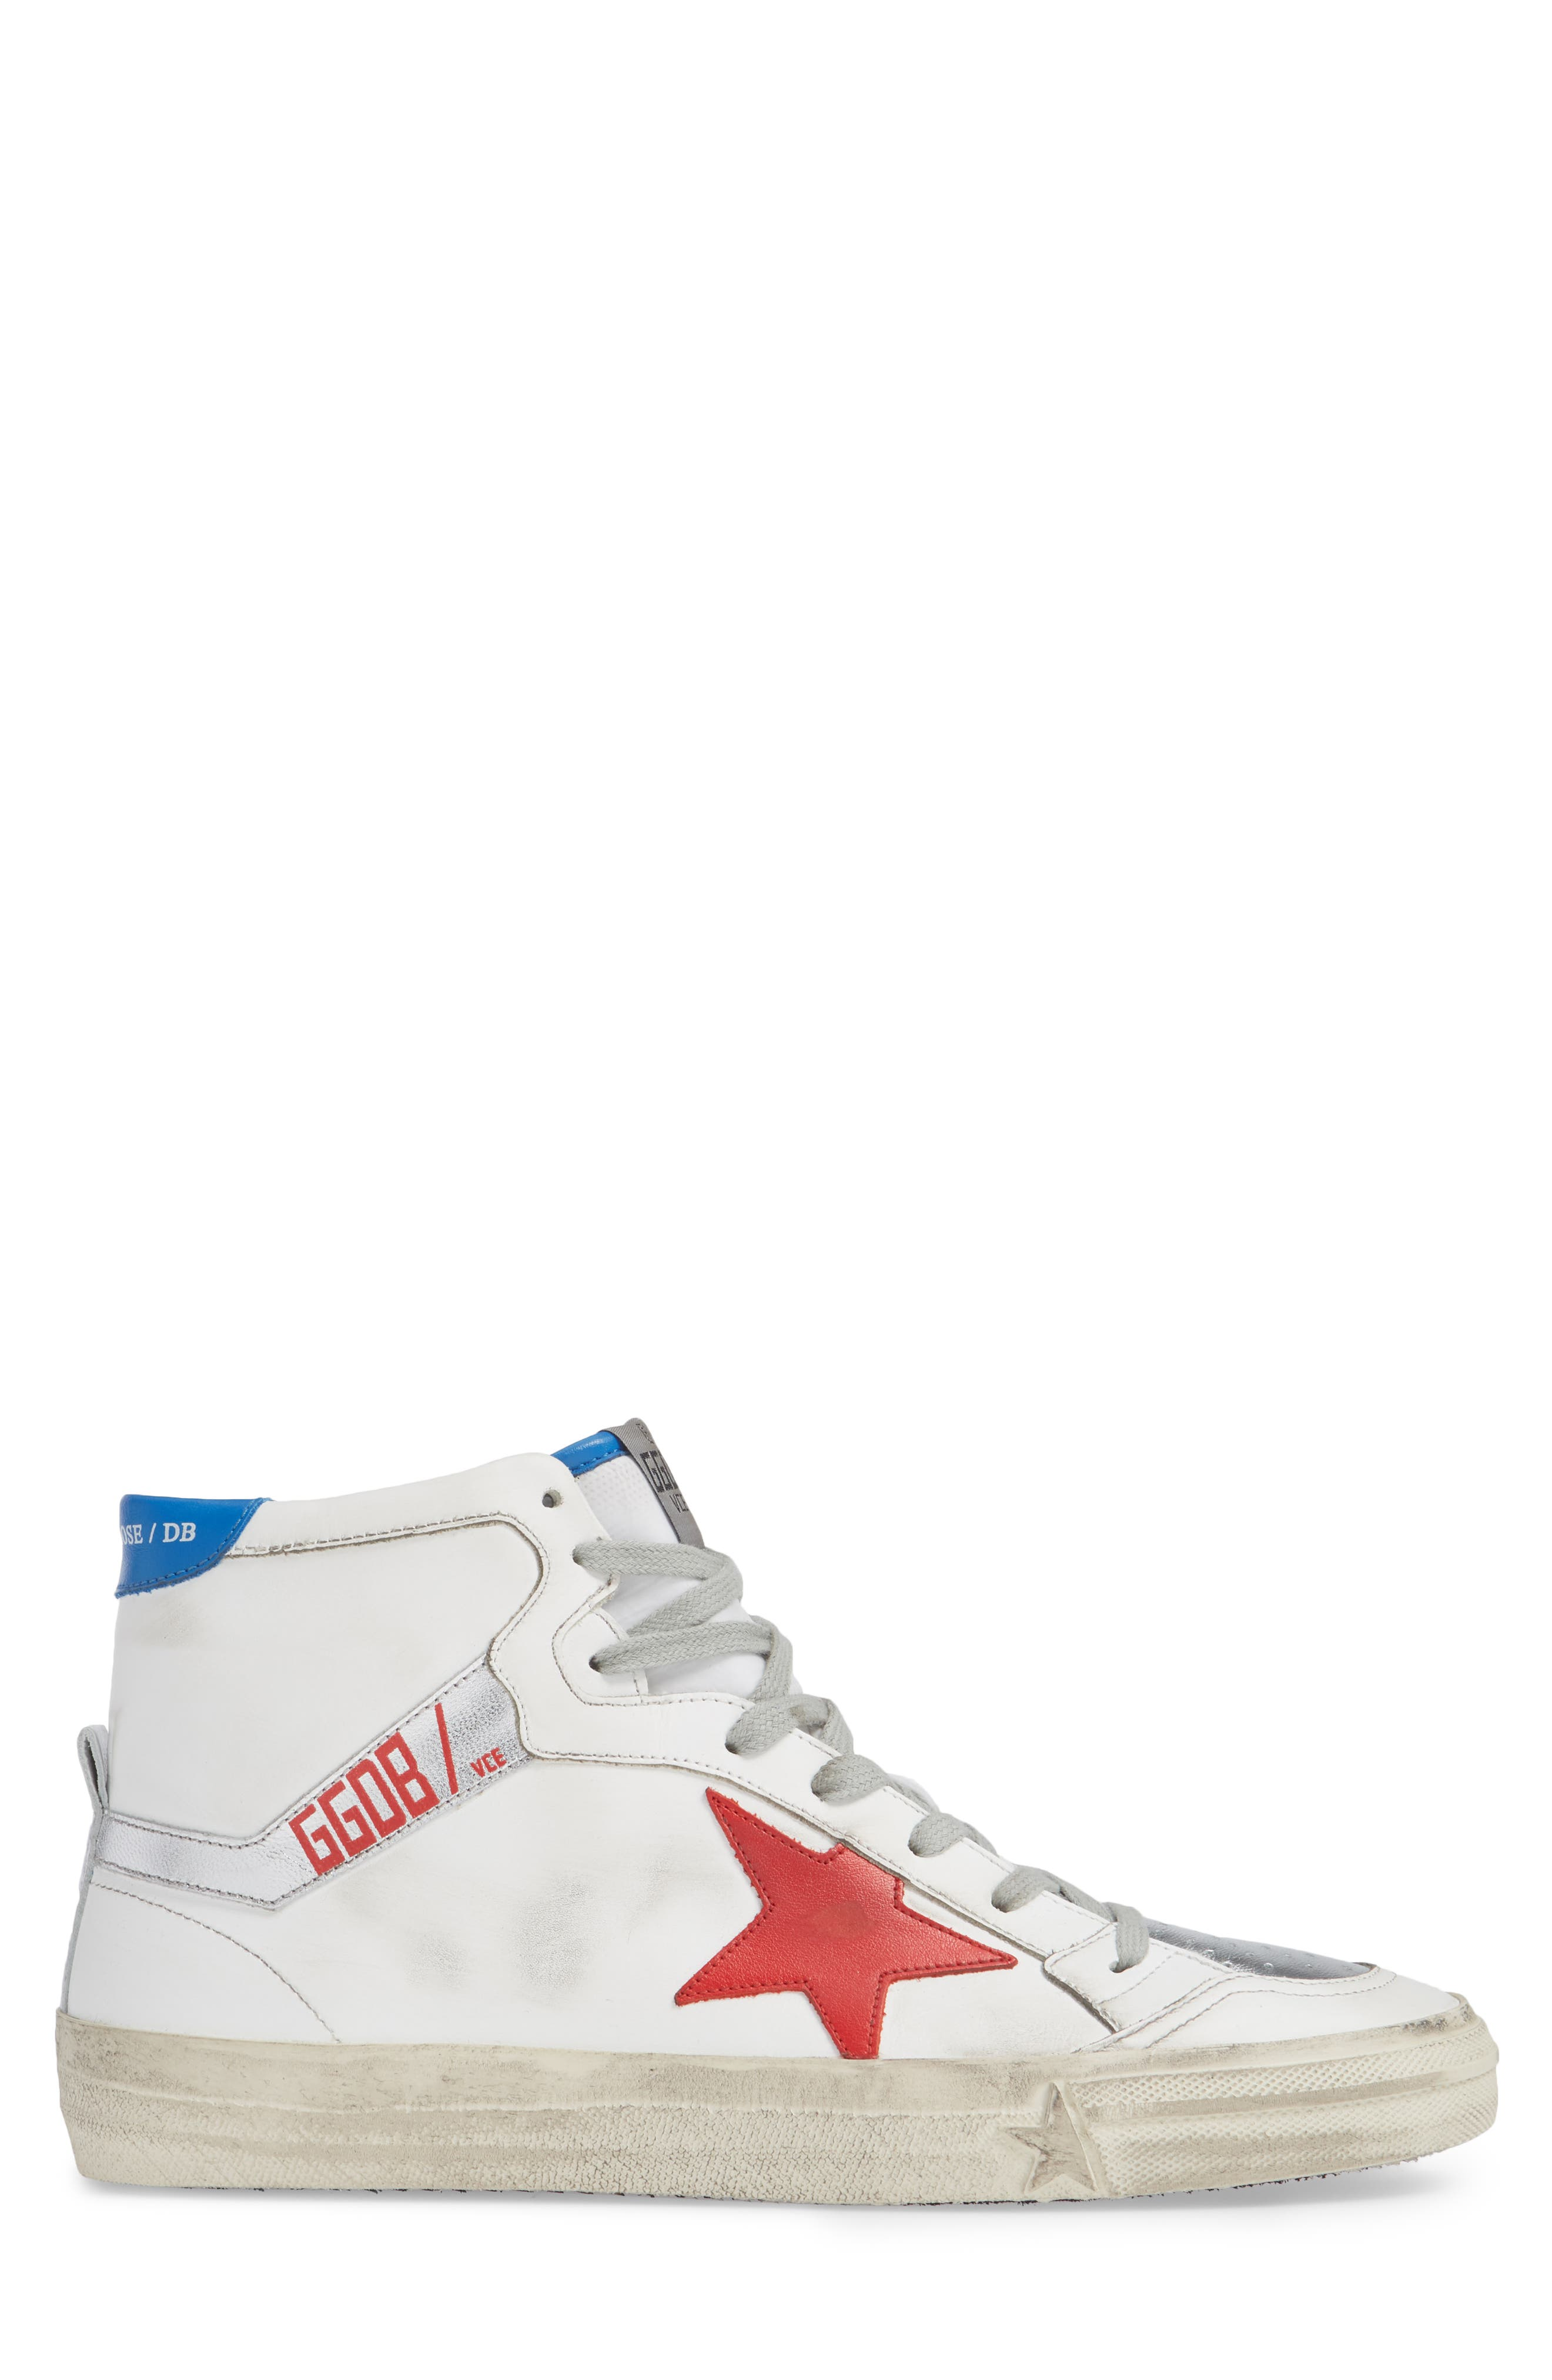 2.12 Star High Top Sneaker,                             Alternate thumbnail 3, color,                             WHITE LEATHER- RED STAR